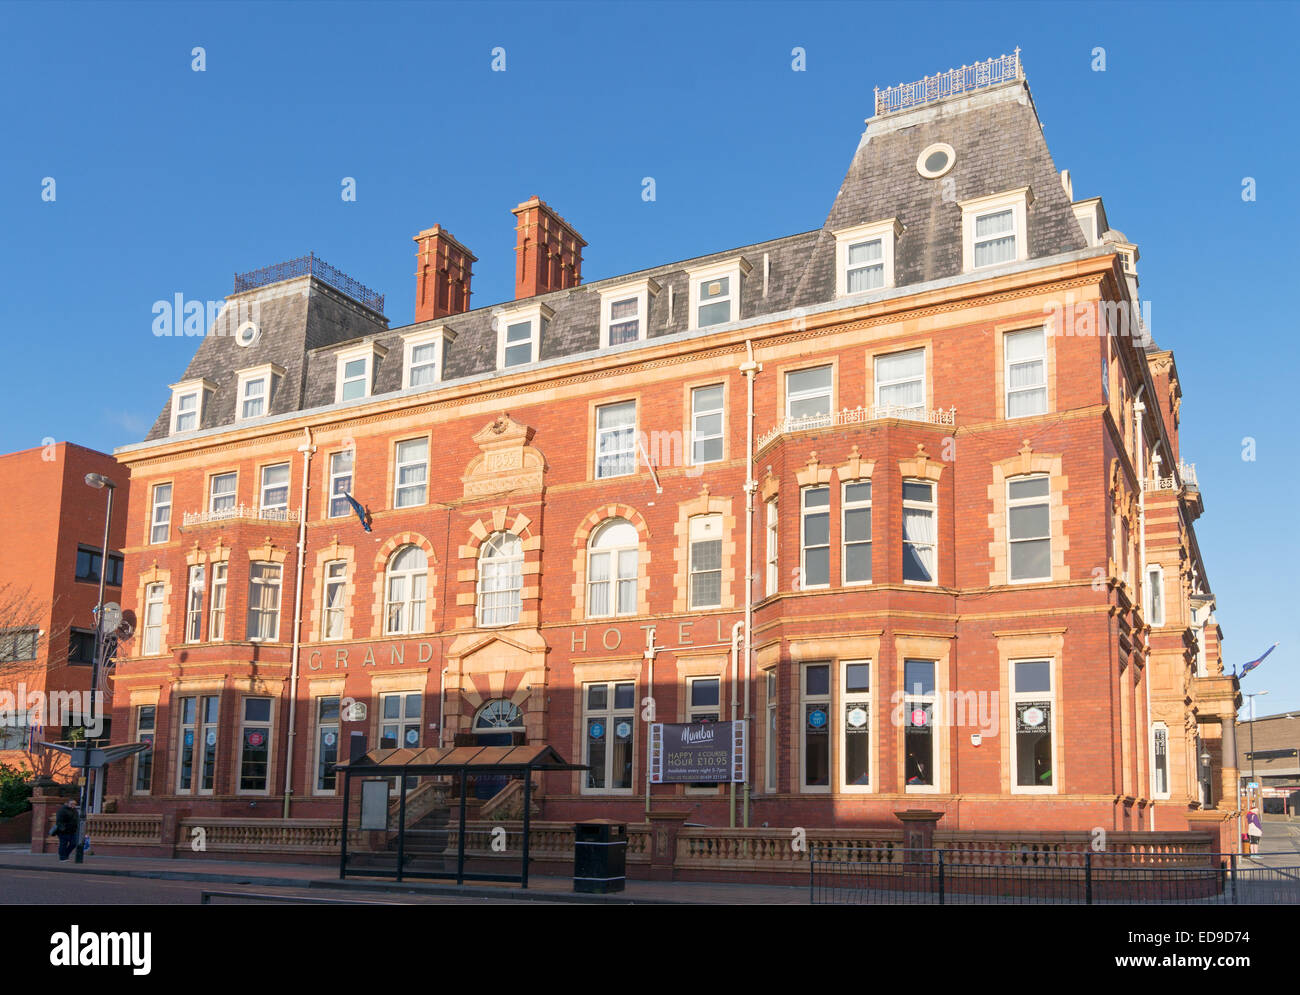 The Best Western Grand Hotel, built 1899, Hartlepool, north east England, UK - Stock Image